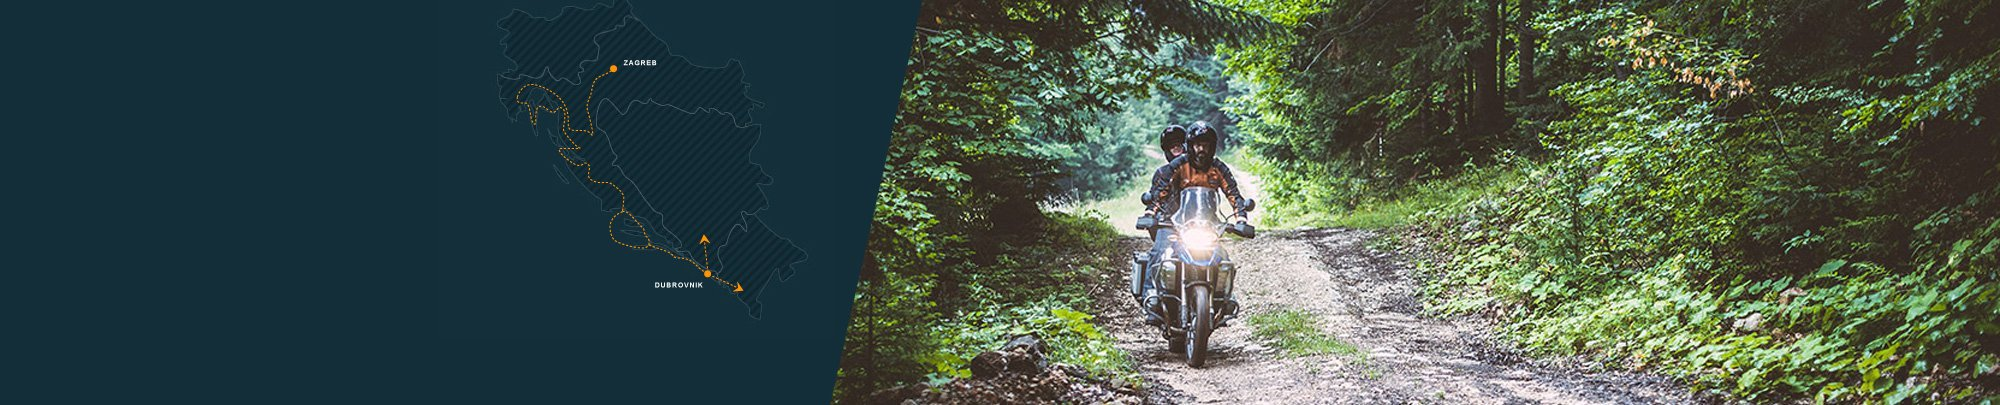 Secrets of Magical Croatia - off-road motorcycle tour in Croatia